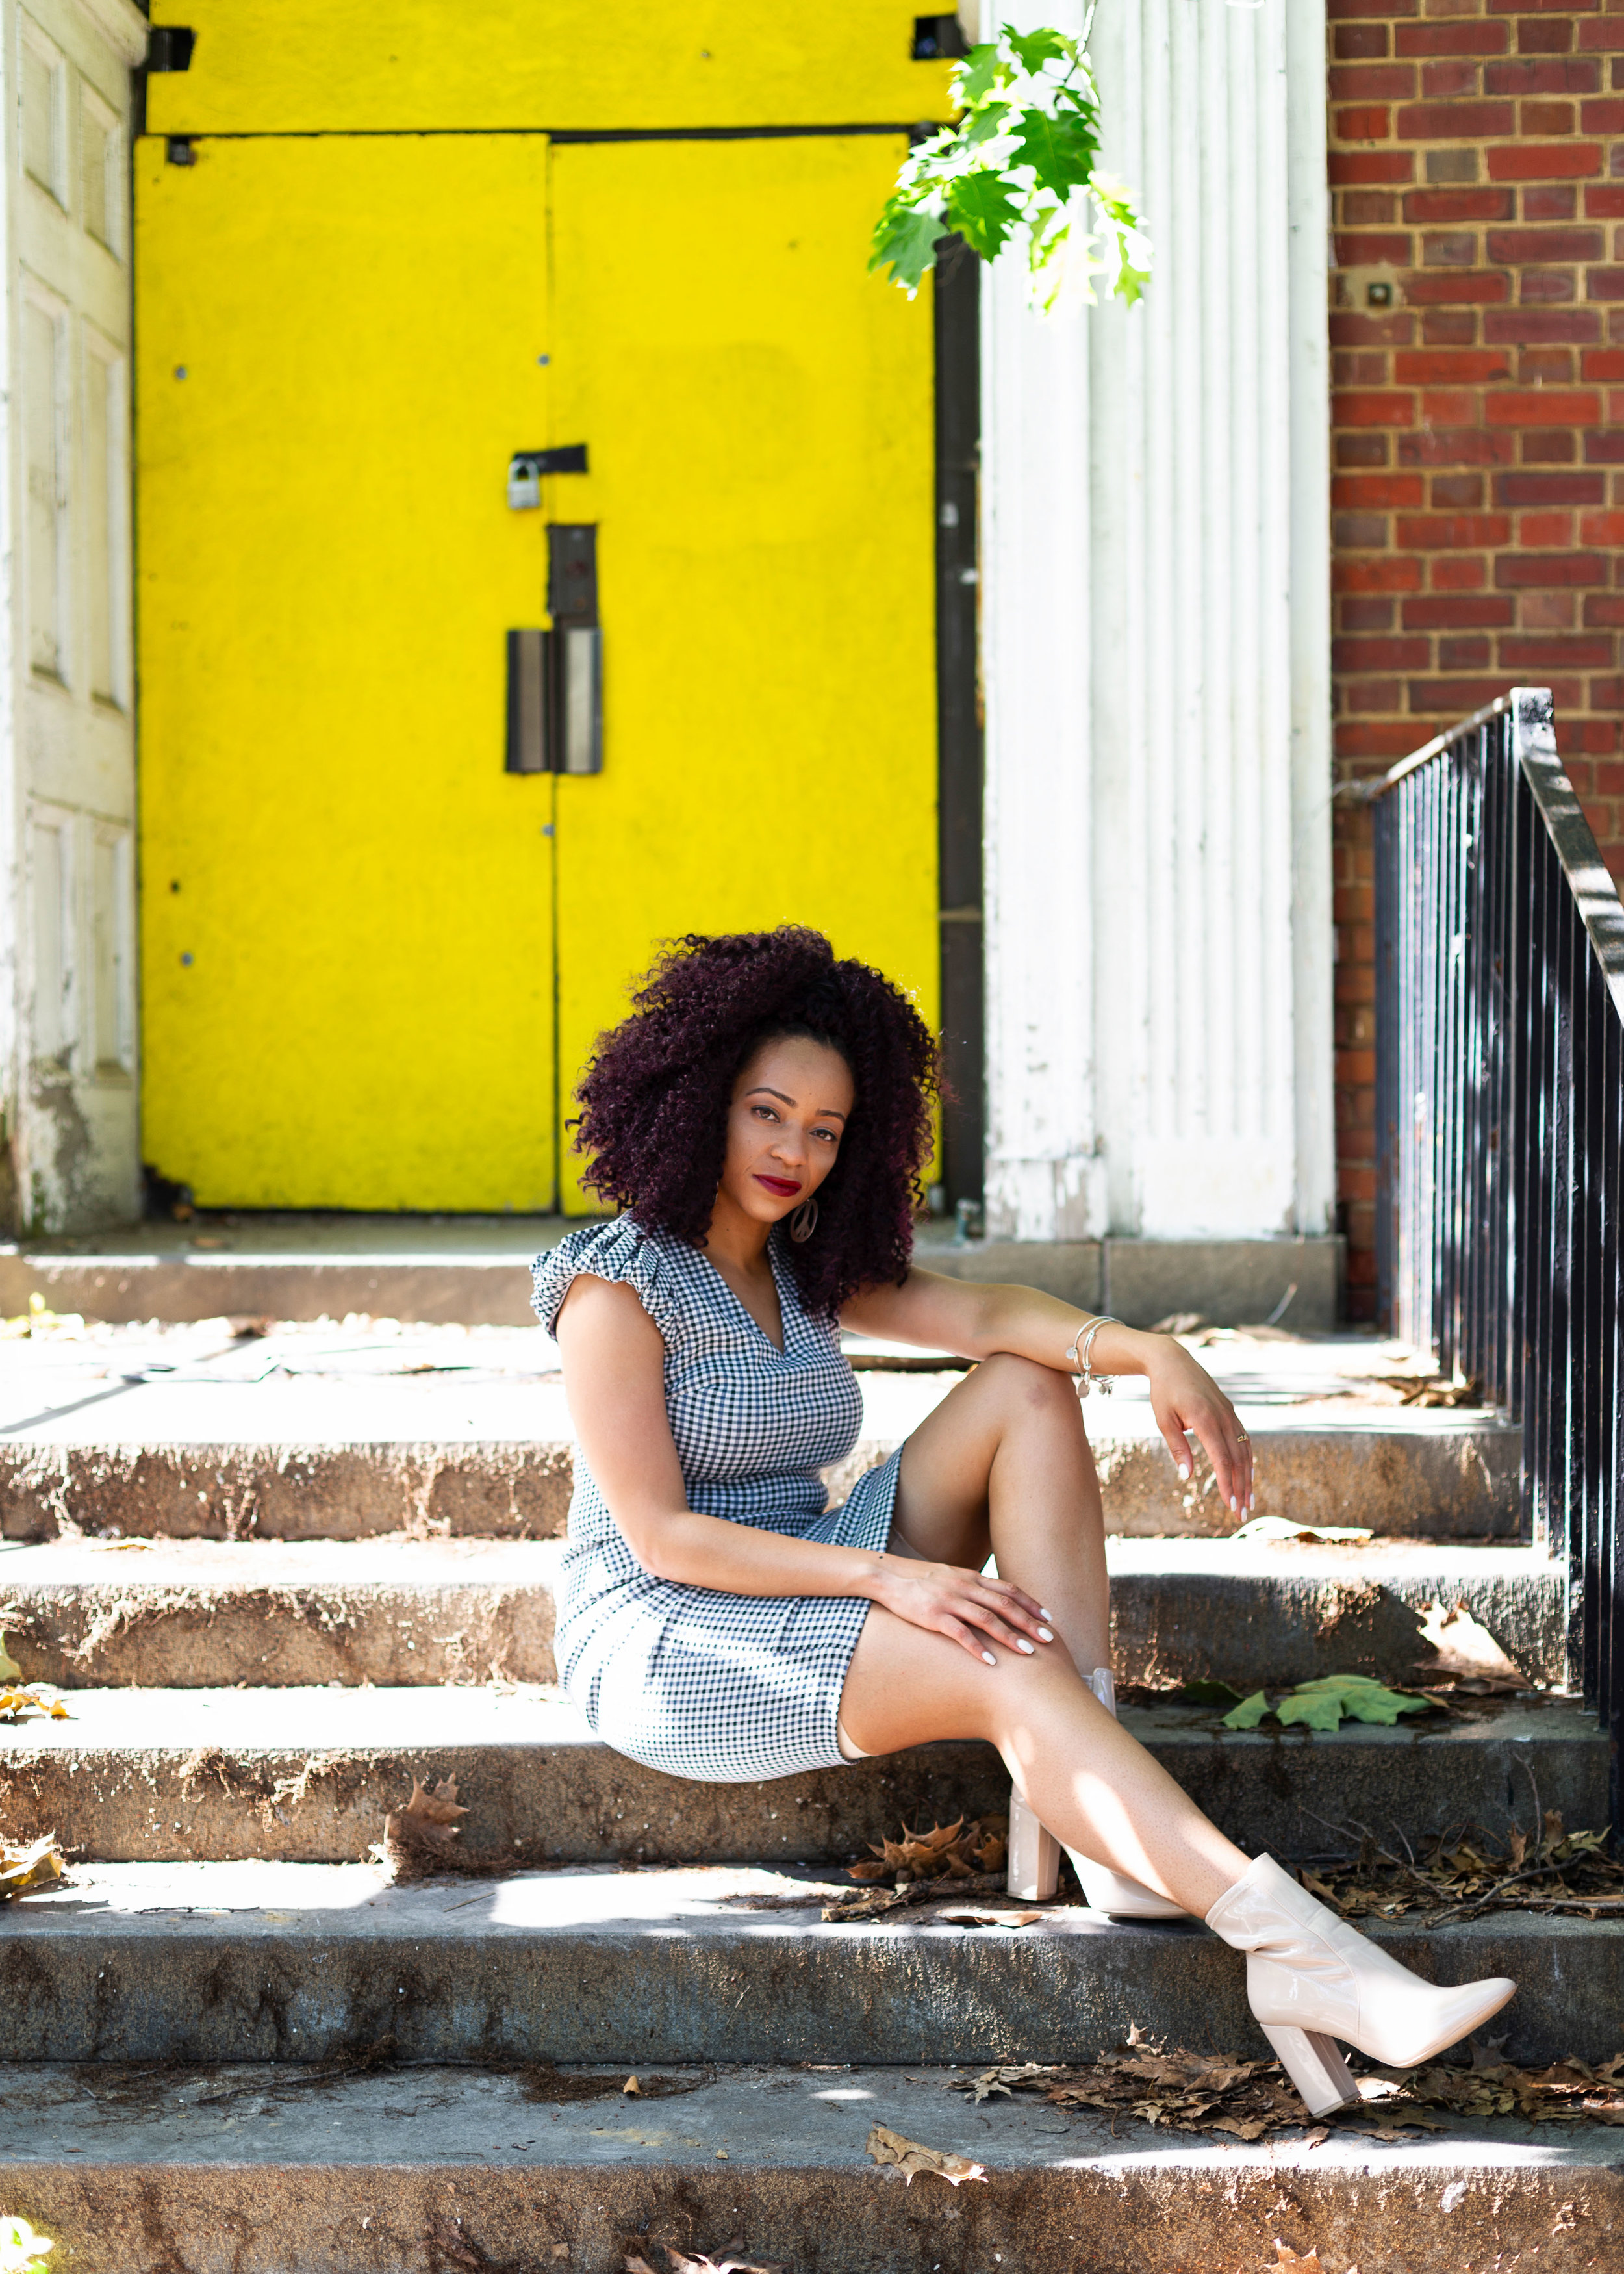 Black Girl Sitting on Steps On Yellow